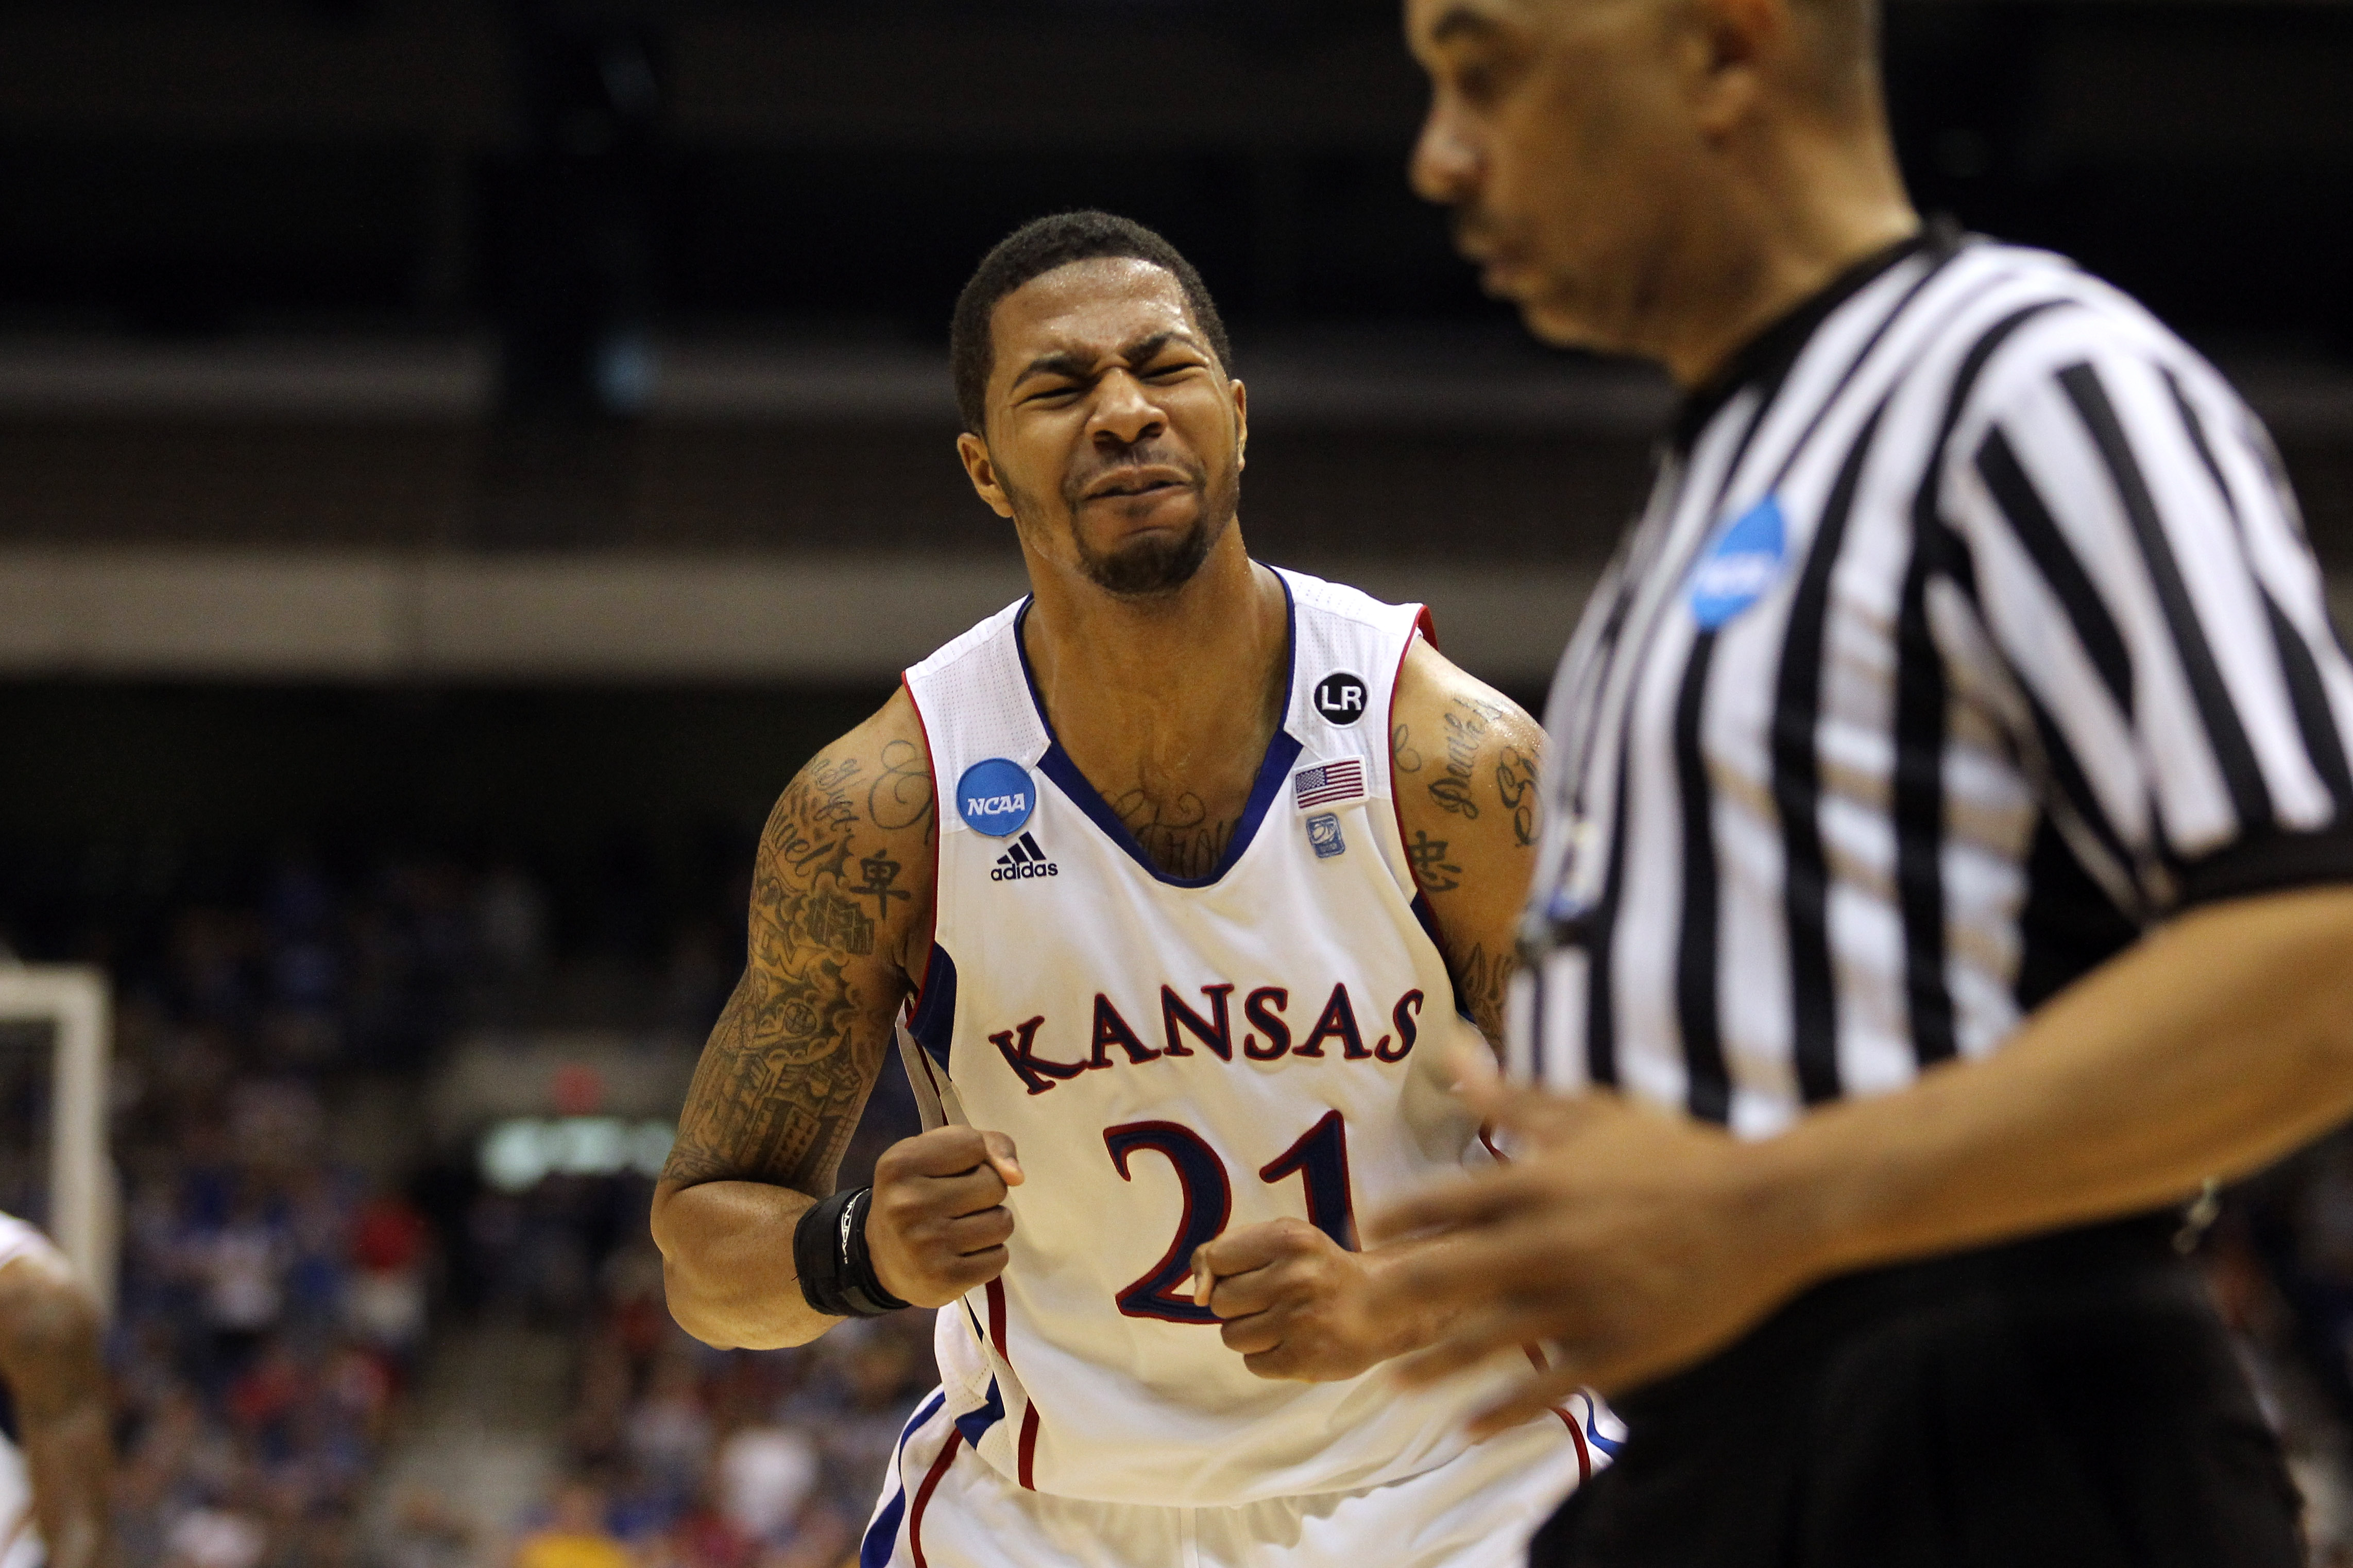 SAN ANTONIO, TX - MARCH 27:  Markieff Morris #21 of the Kansas Jayhawks reacts during the southwest regional final of the 2011 NCAA men's basketball tournament against the Virginia Commonwealth Rams at the Alamodome on March 27, 2011 in San Antonio, Texas